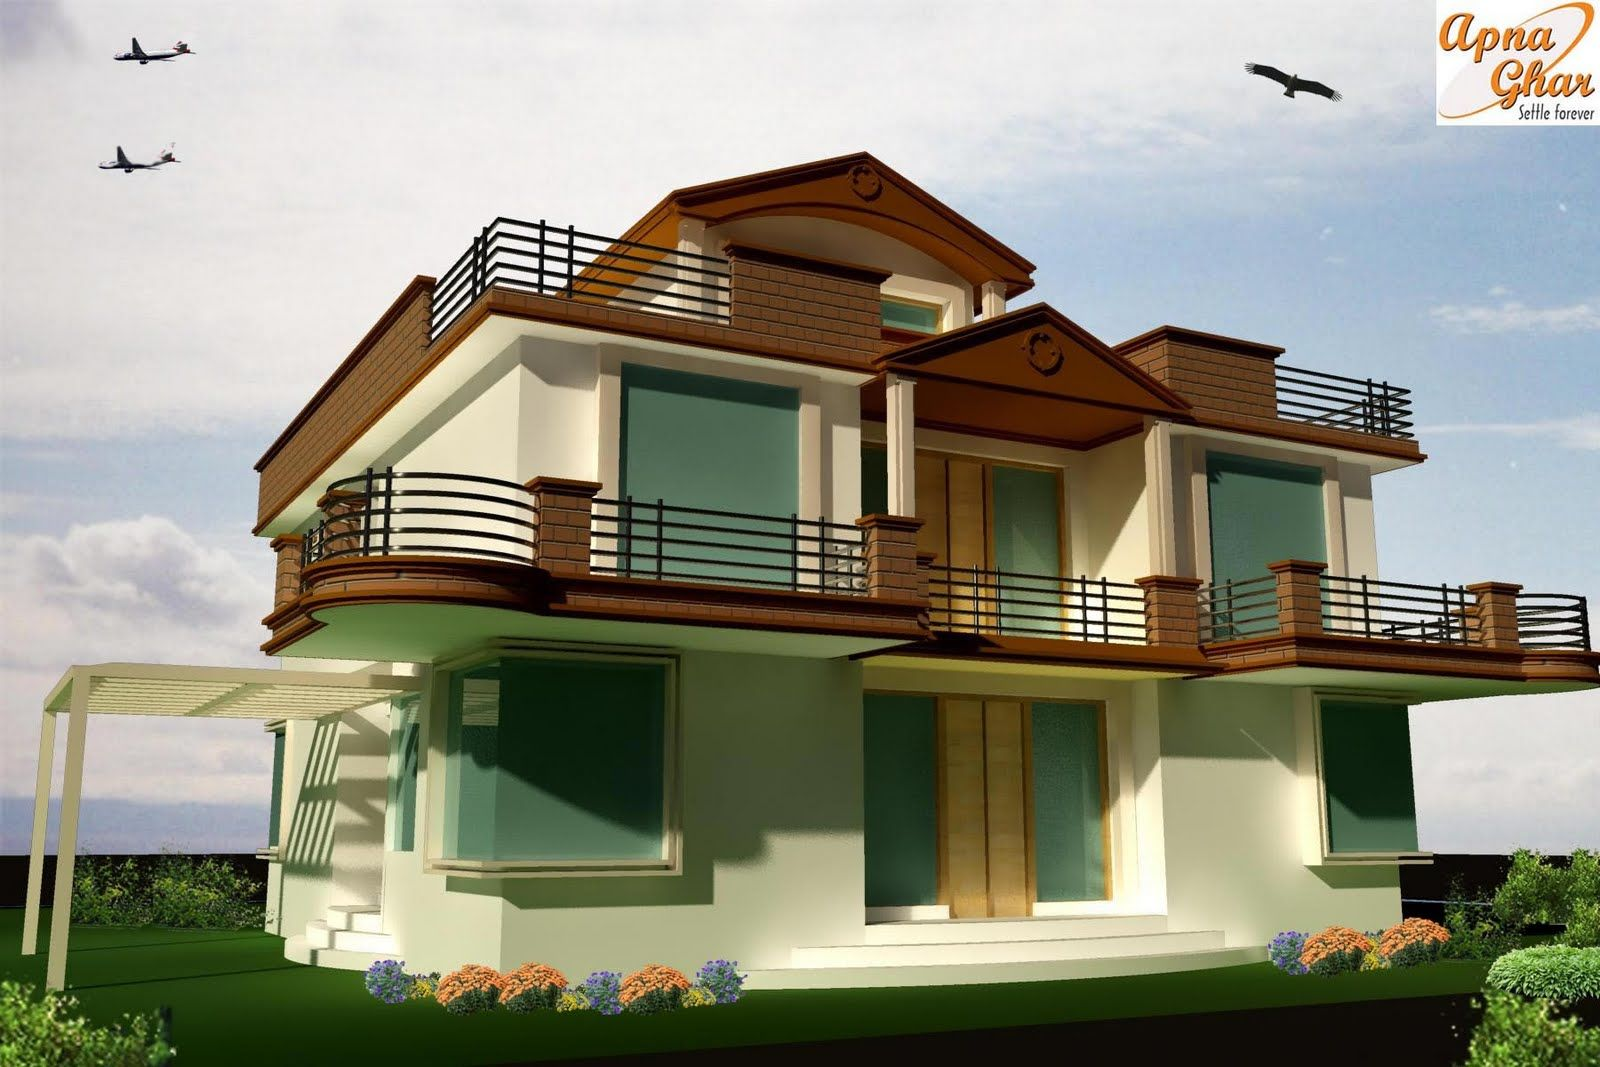 Architectural designs modern architectural house plans for Best architecture houses